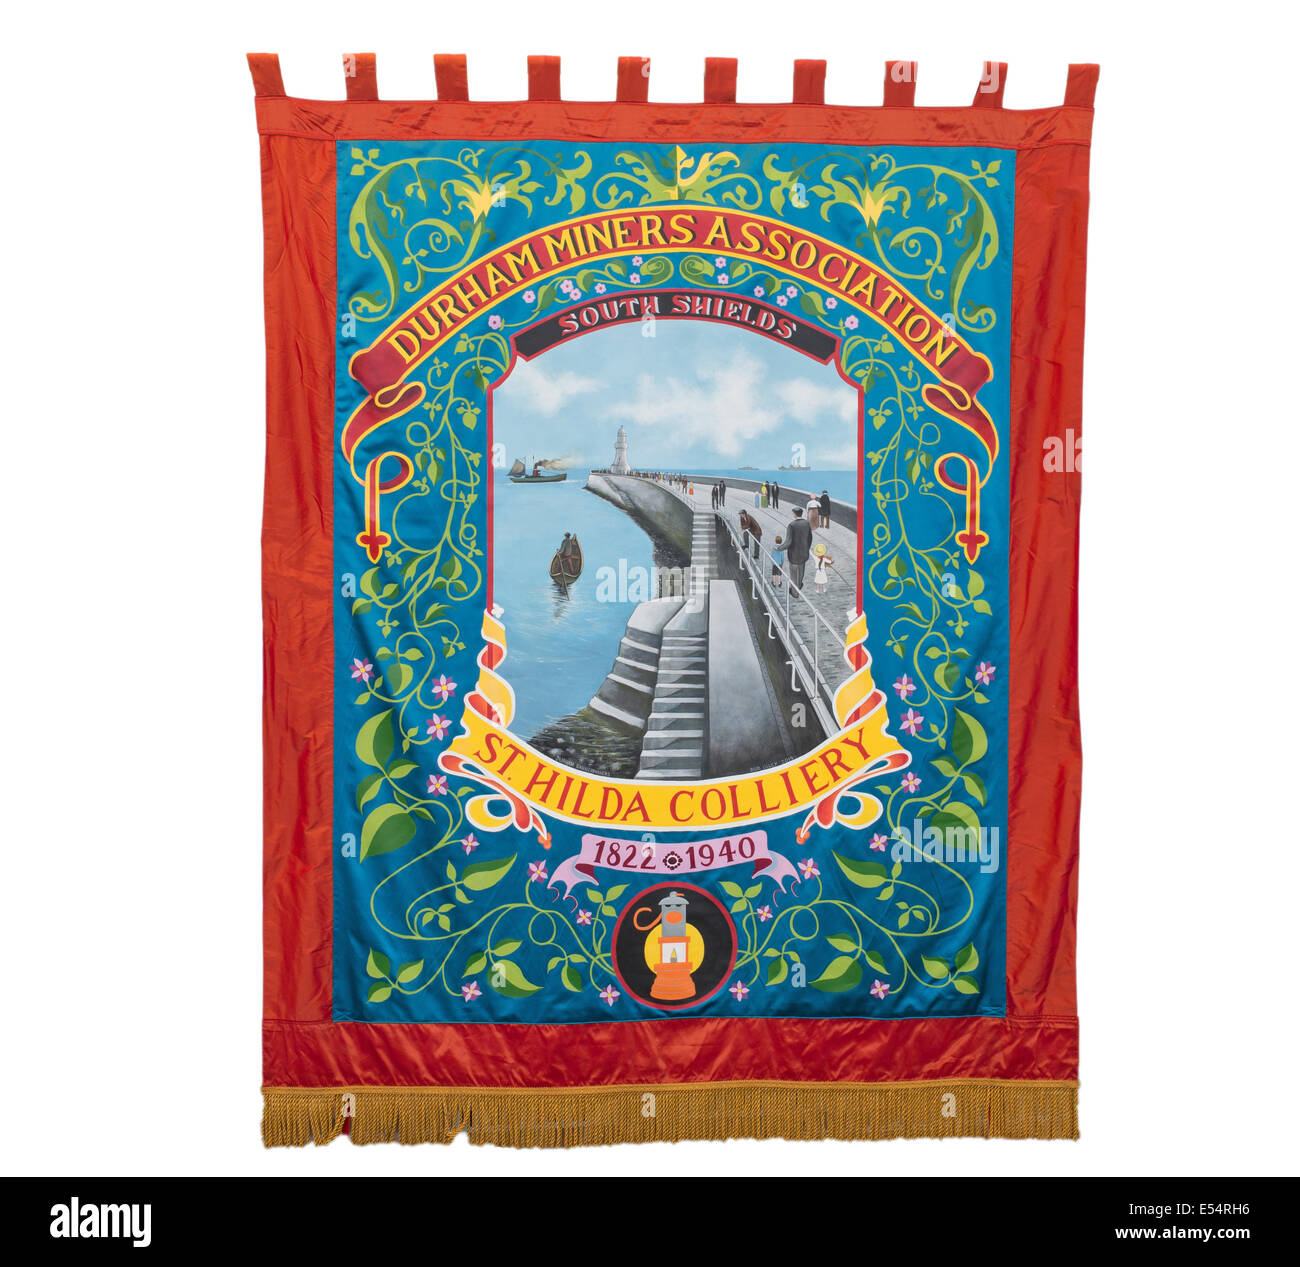 Durham Miners' Association St Hilda Colliery banner, seen at Bede's World, Jarrow, north east England, UK - Stock Image